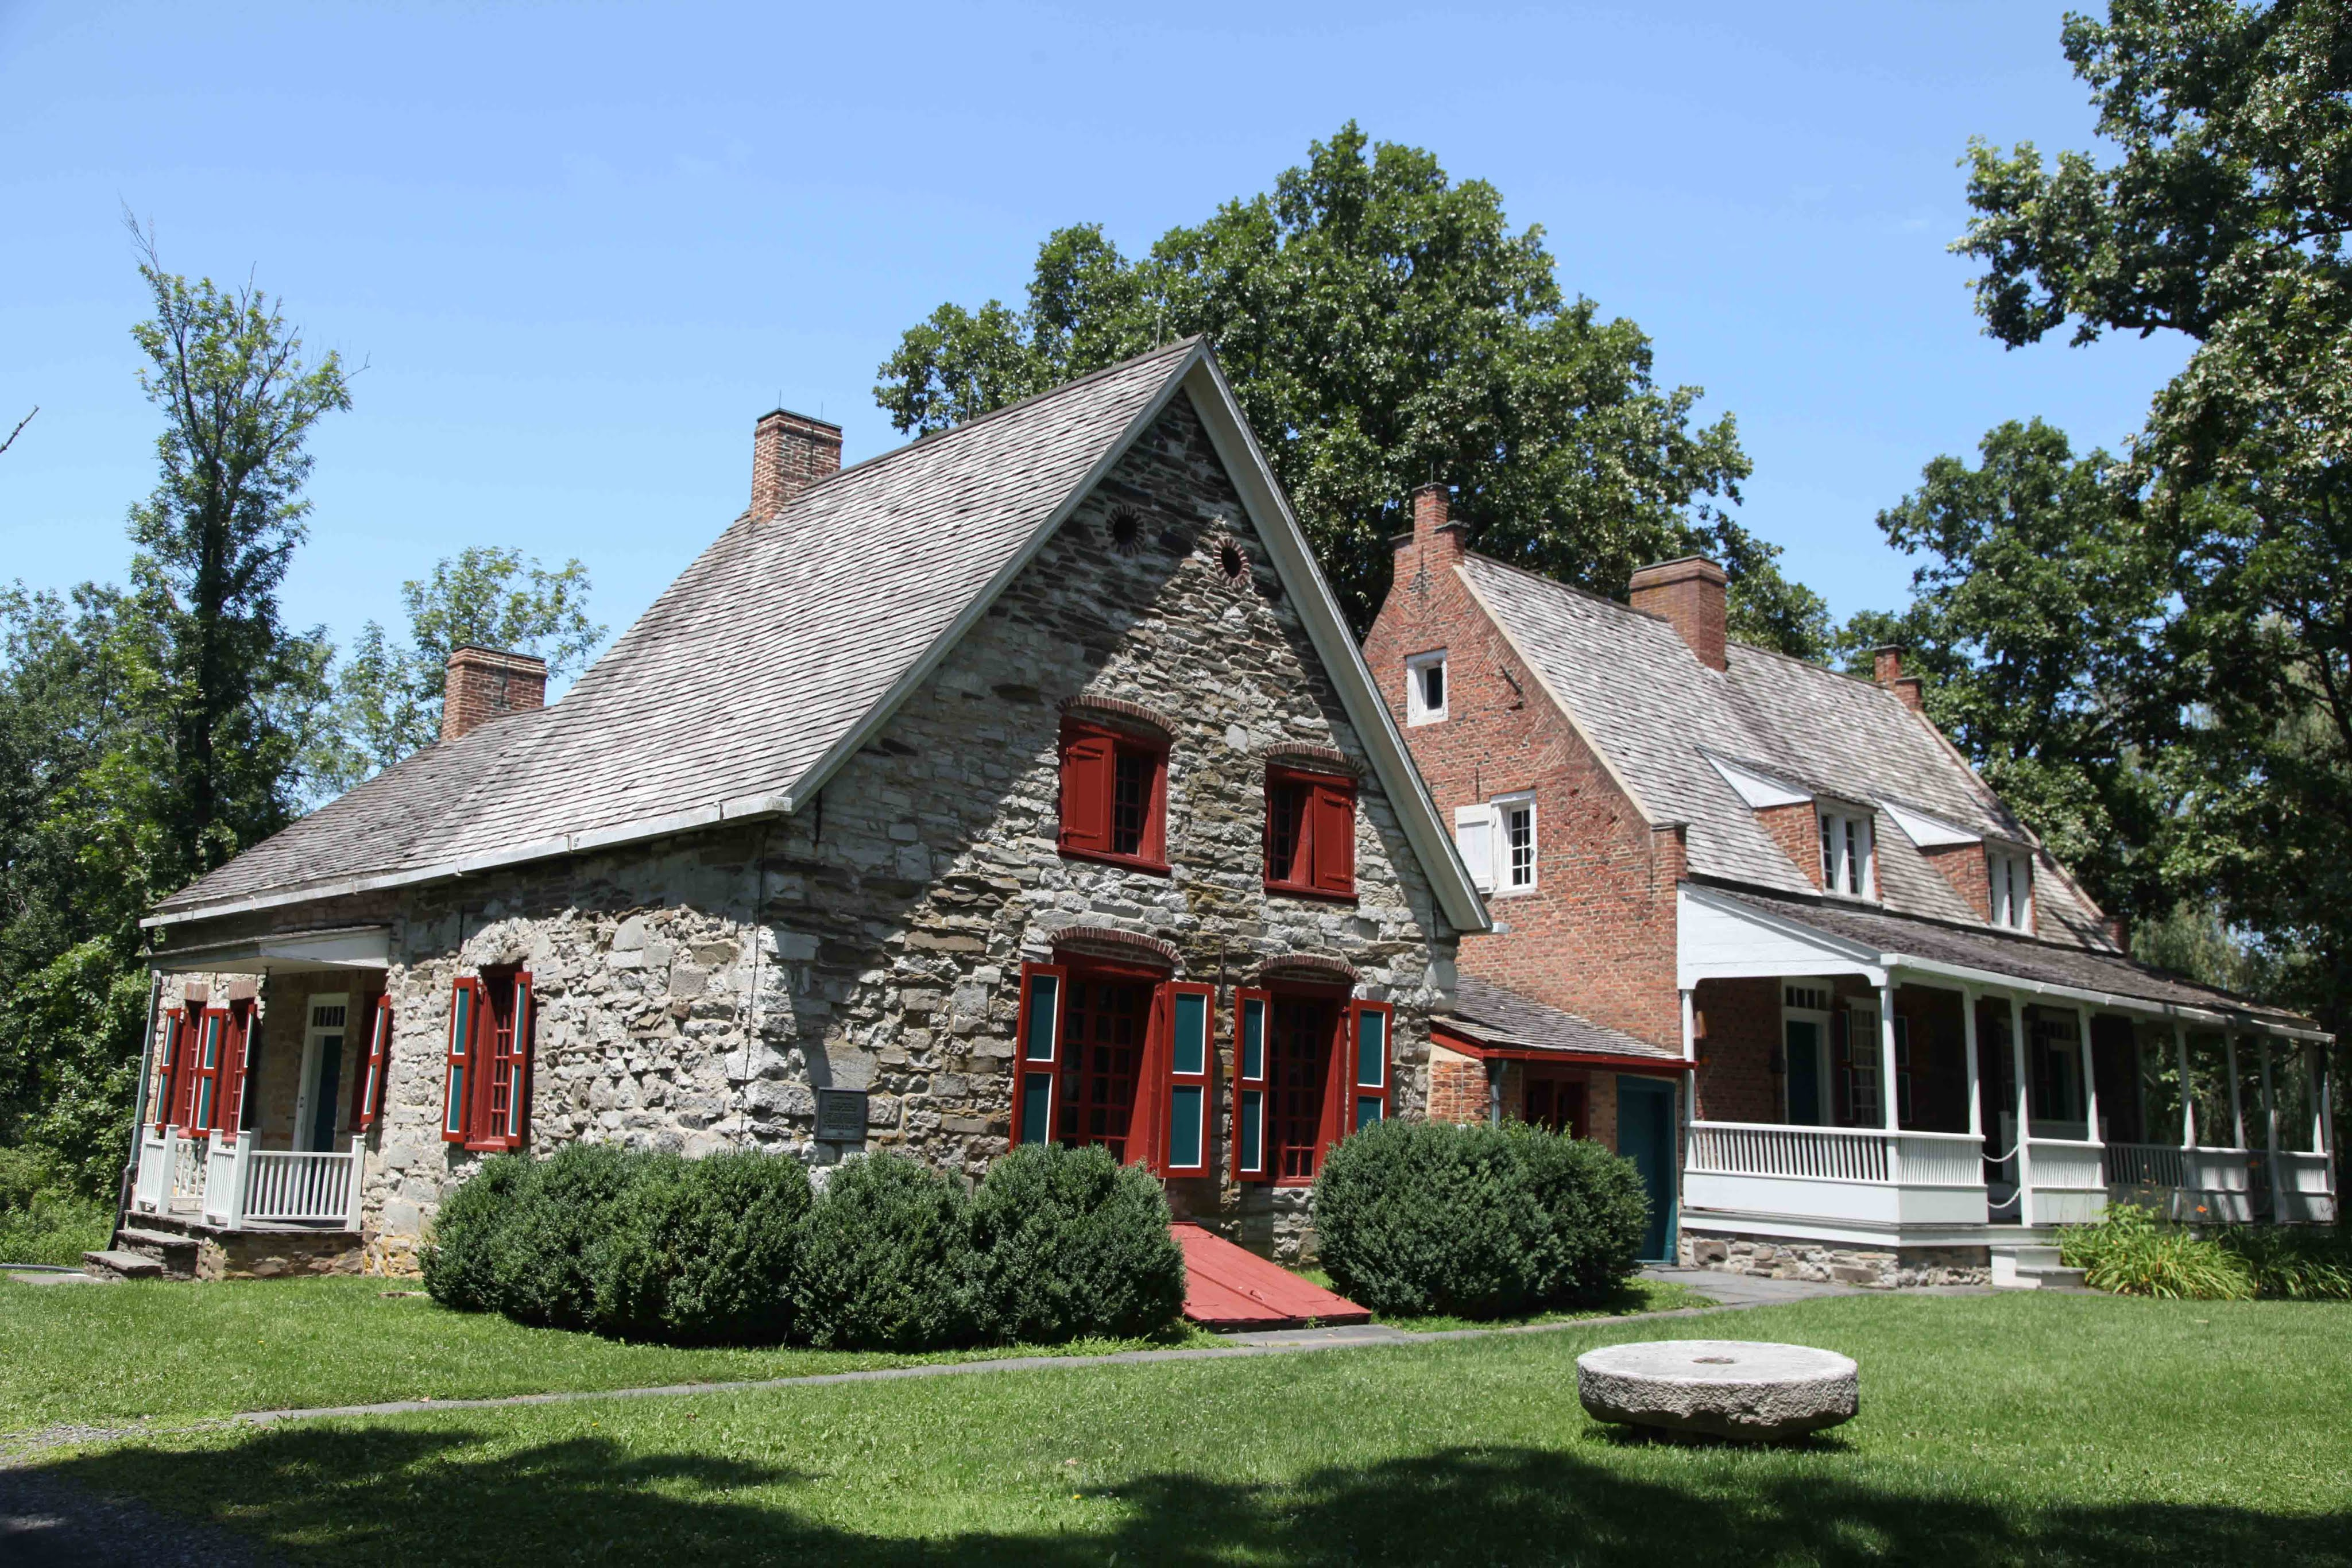 The museum is located inside several historic buildings, including this home which is believed to be the oldest in the Hudson Valley.